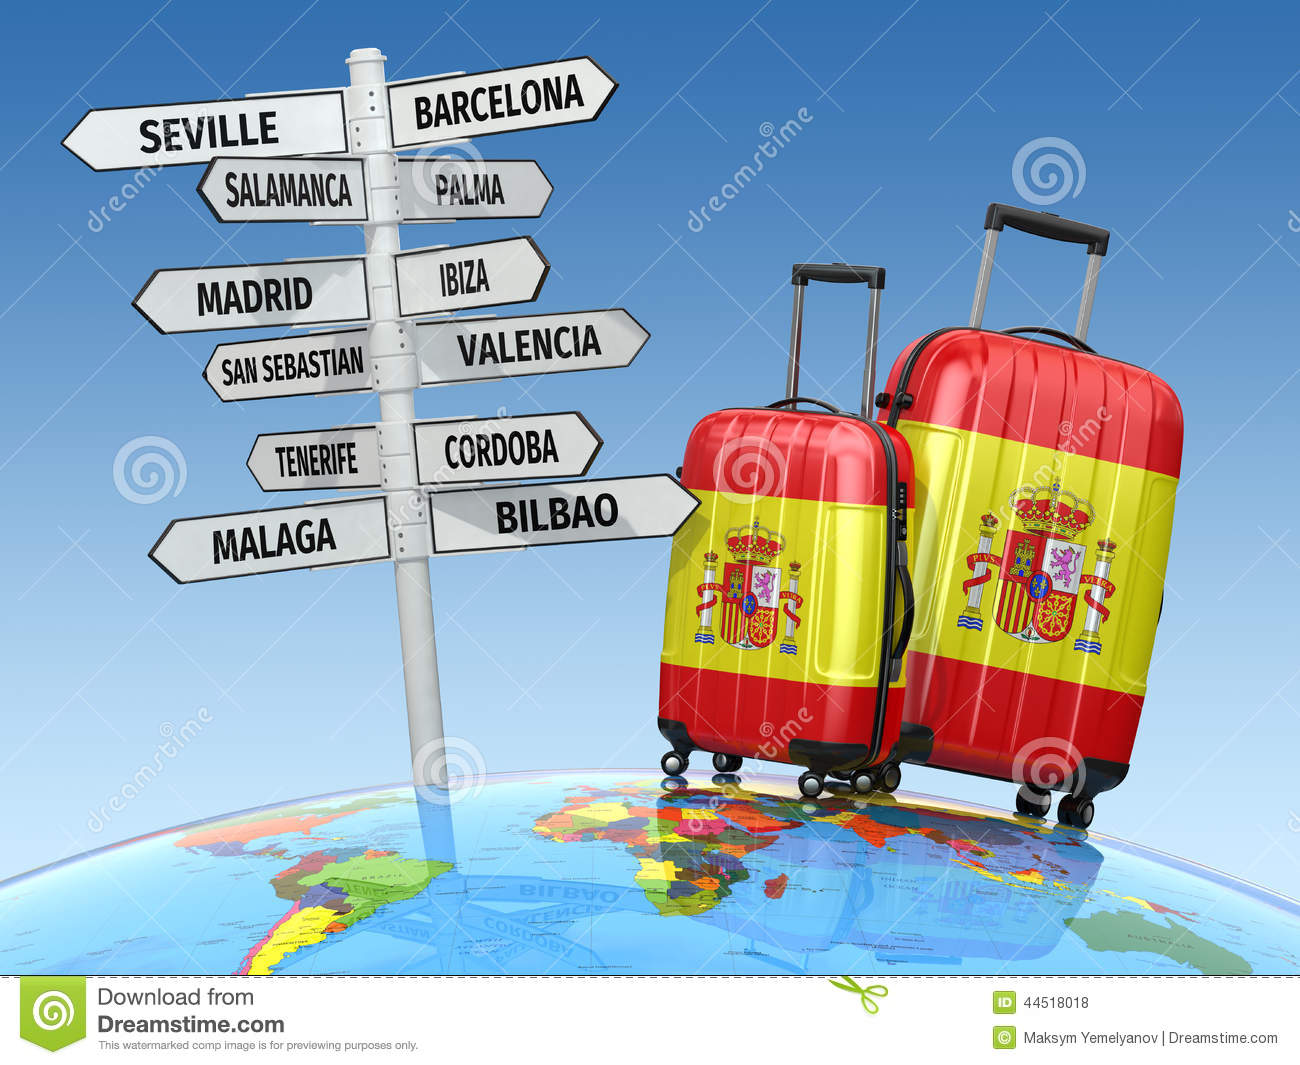 travel concept suitcases and signpost what to visit in spain stock illustration illustration. Black Bedroom Furniture Sets. Home Design Ideas